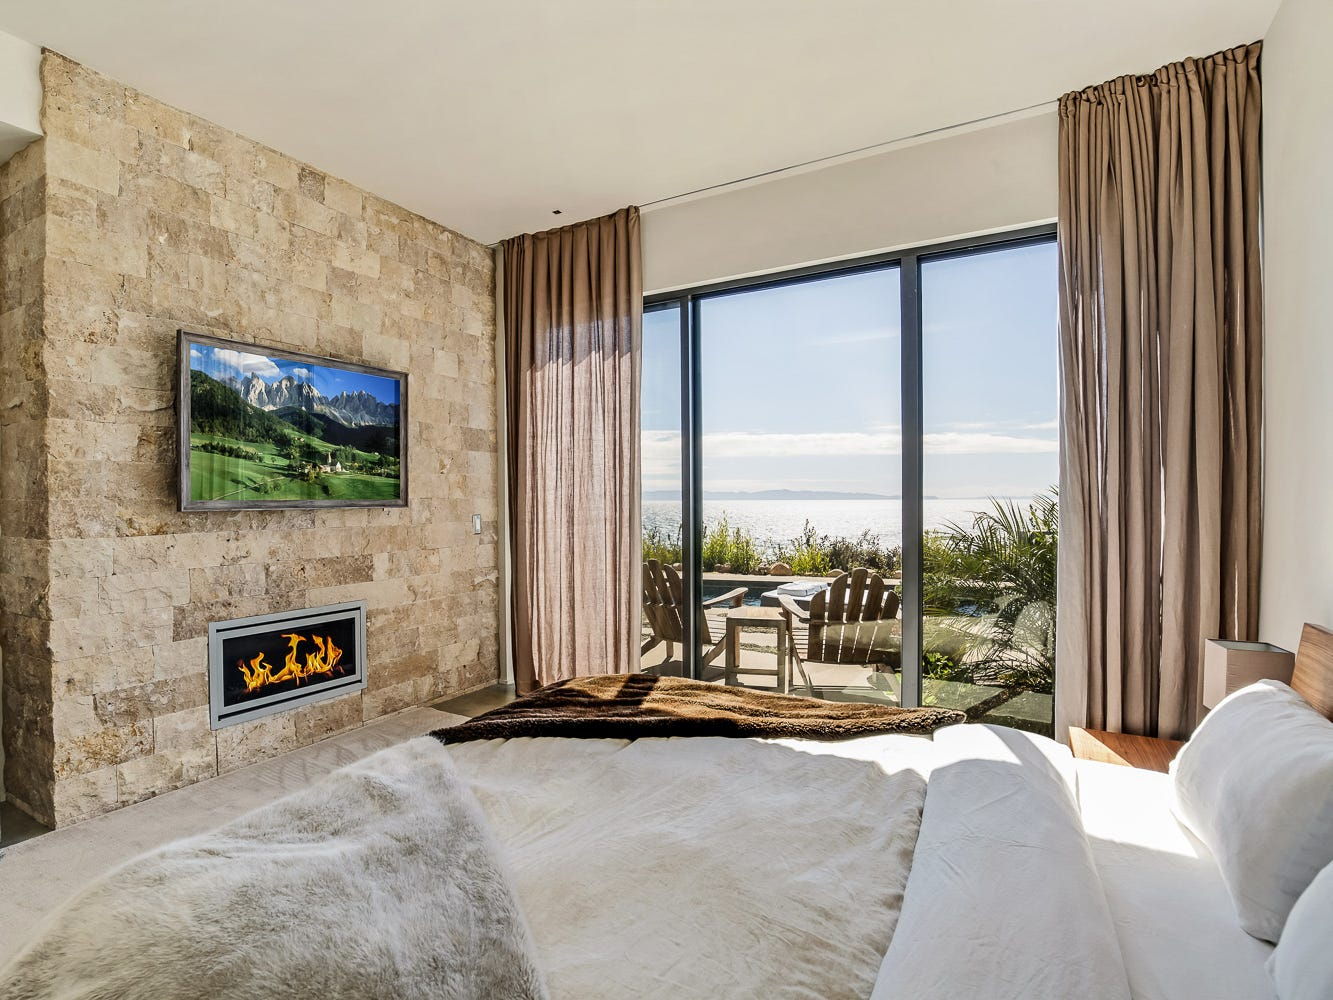 For more information: https://www.luxuryretreats.com/vacation-rentals/united-states/california-santa-barbara/santa-barbara/santa-barbara-beach-estate-121139